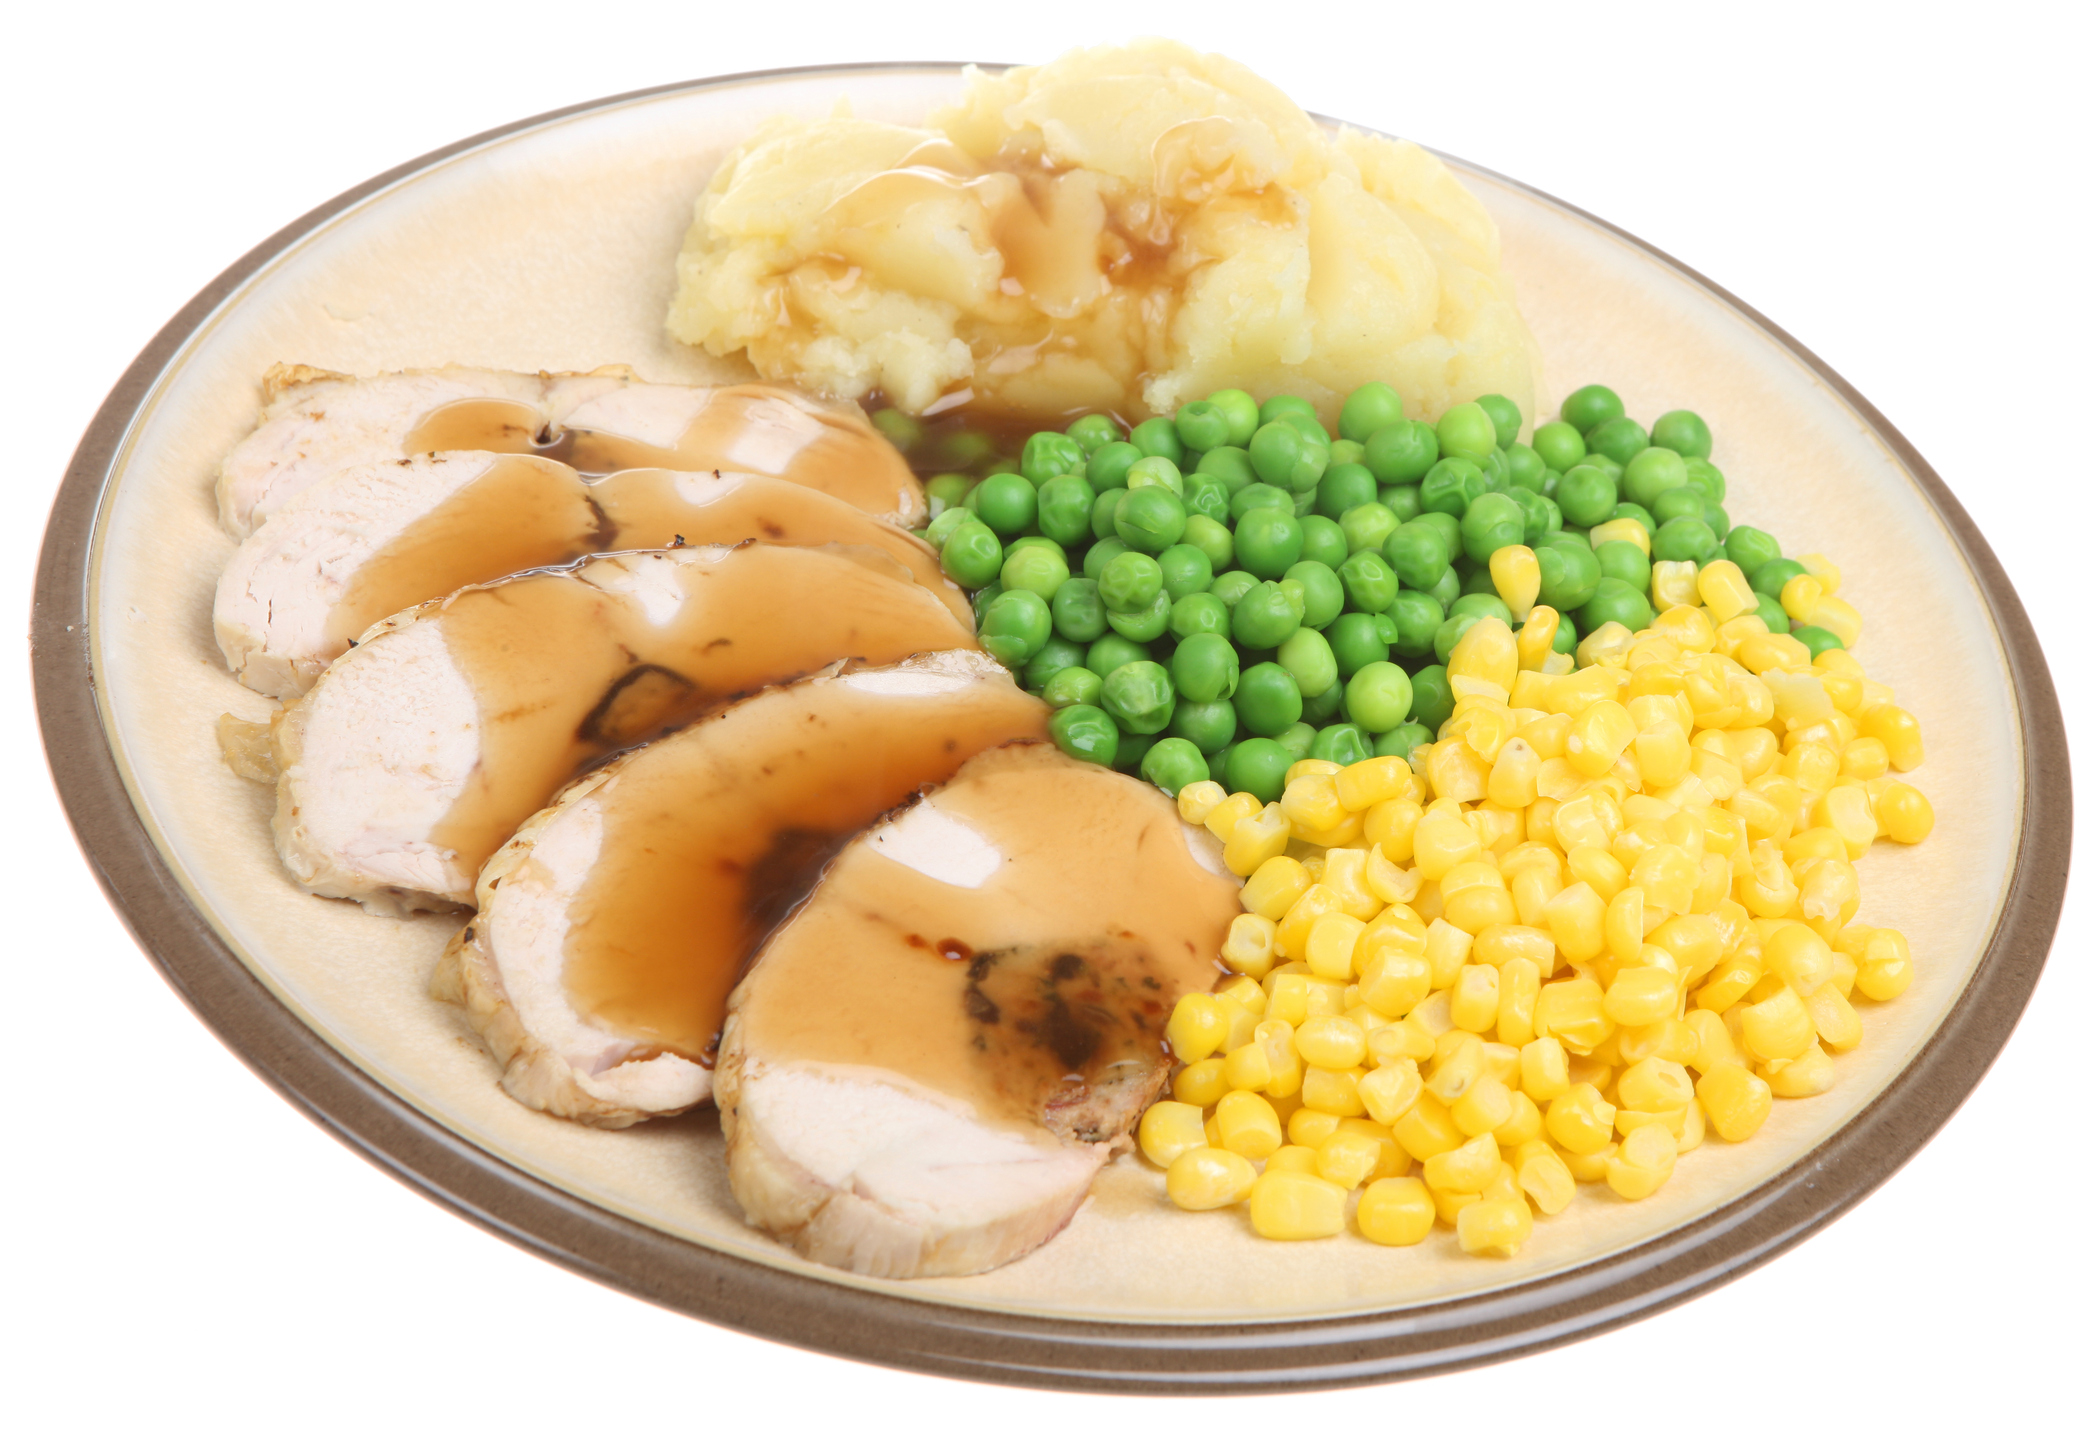 Plate of turkey, mashed potatoes, gravy and vegetables.